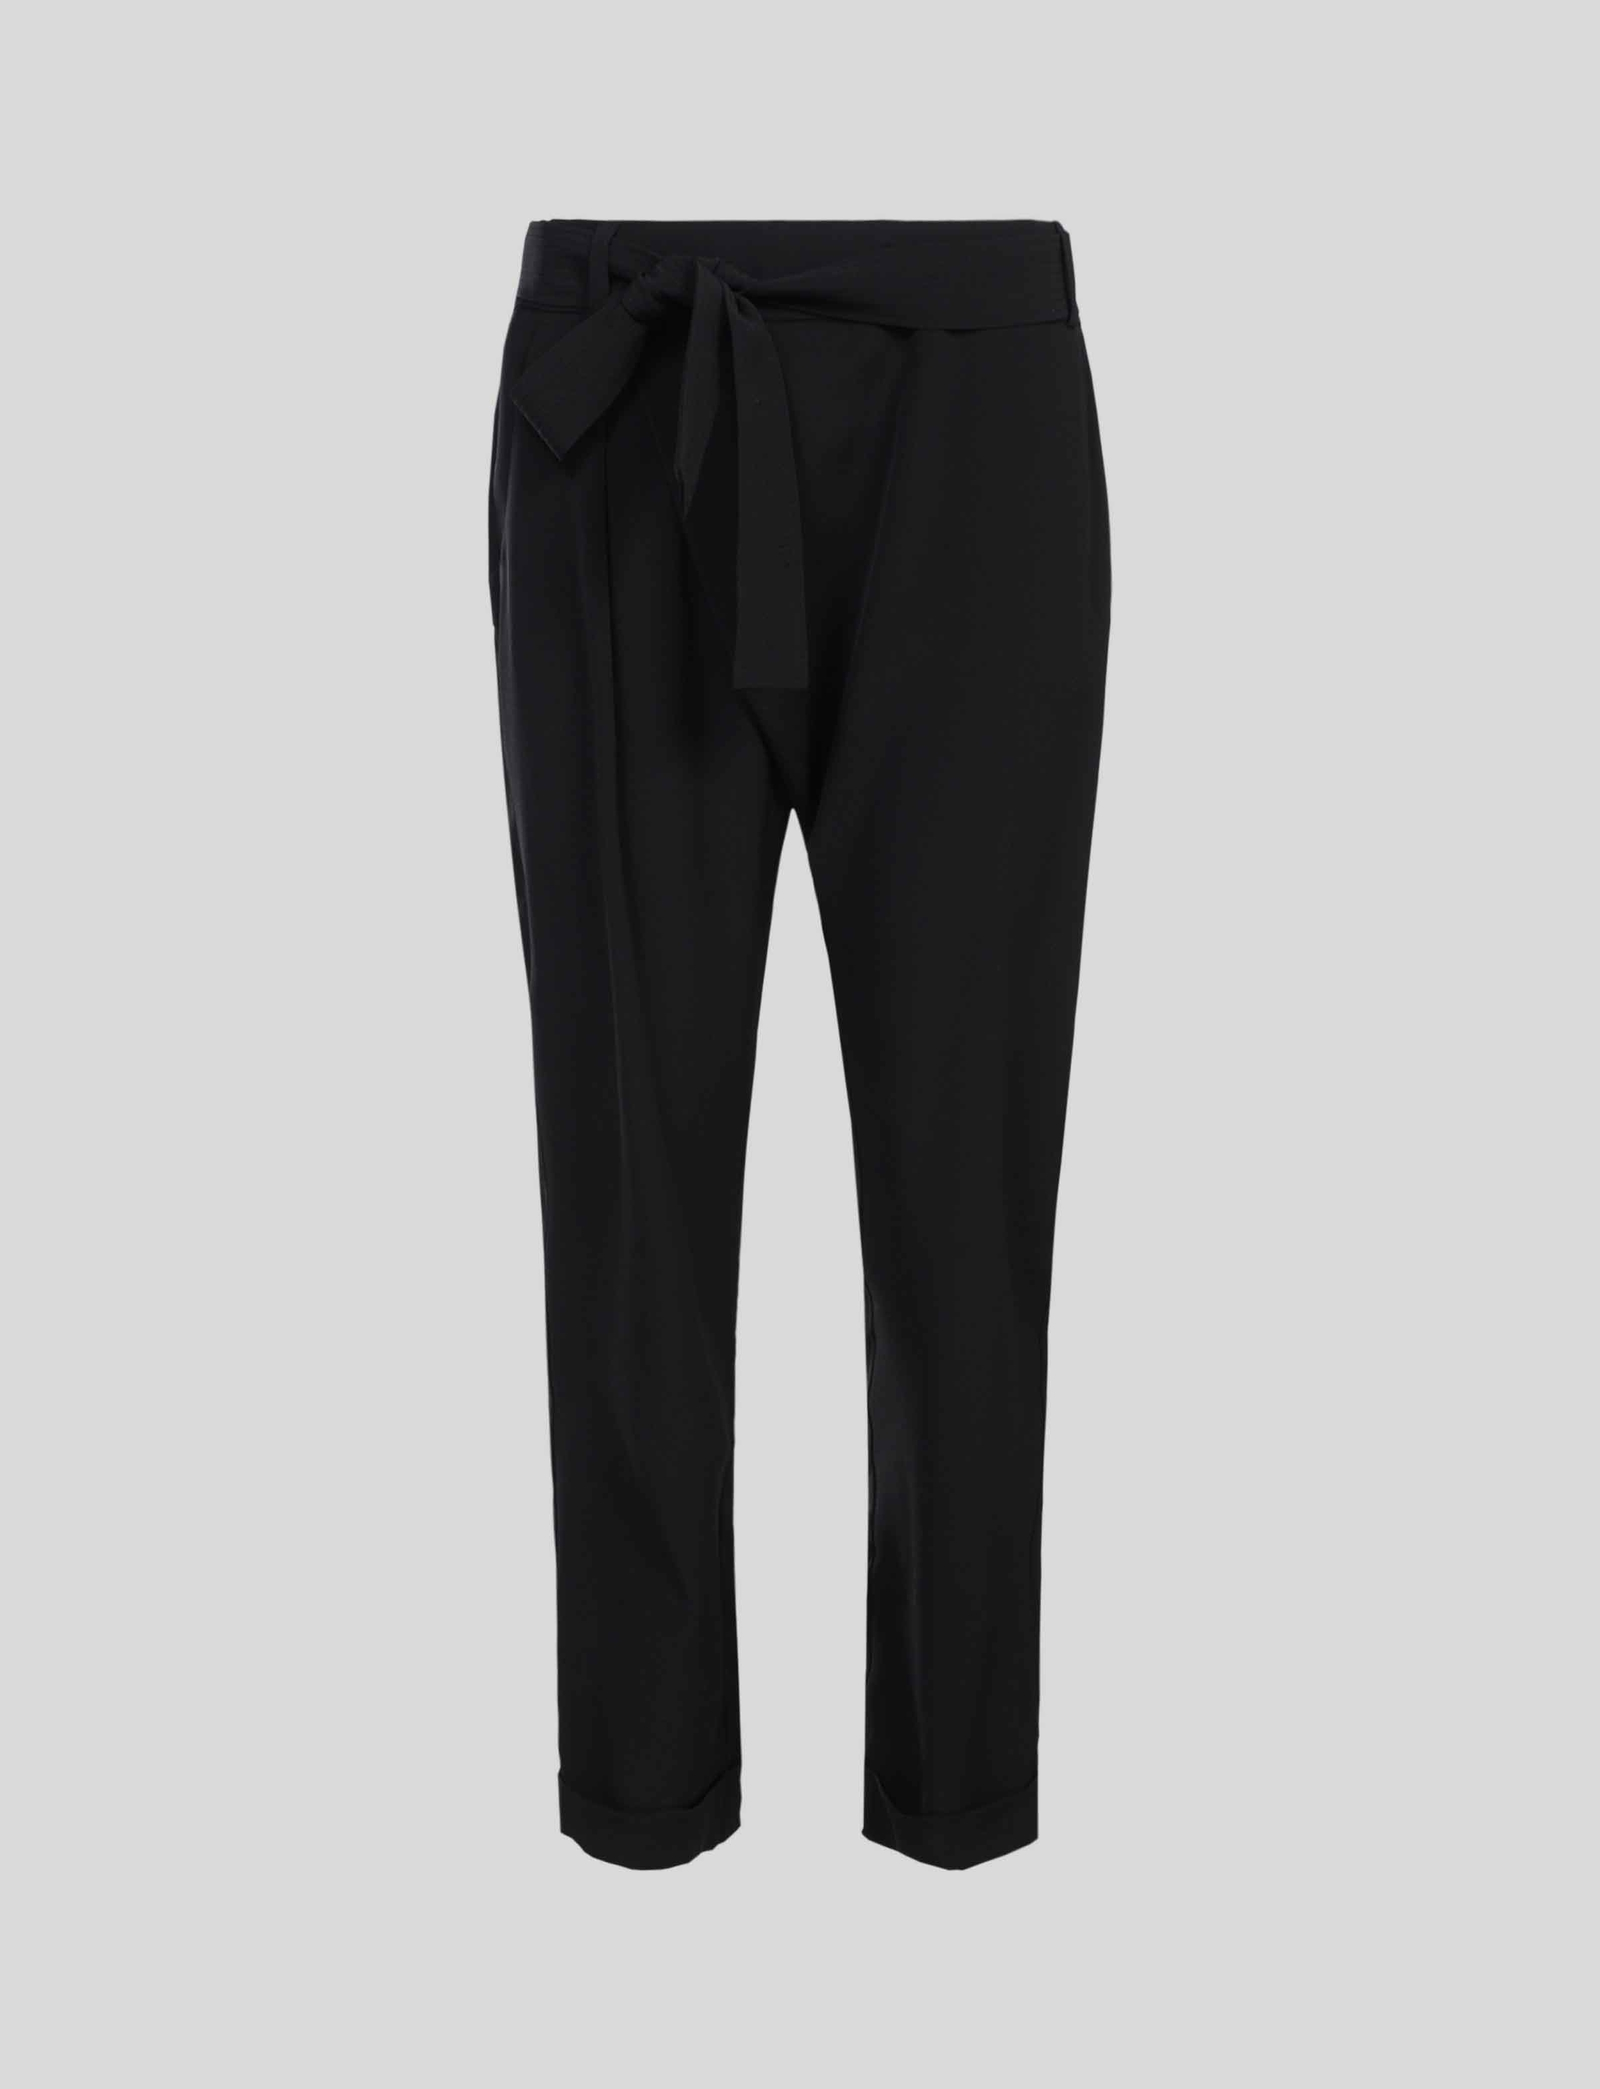 Summum Studio Trousers Crepe Viscose Blend - Black